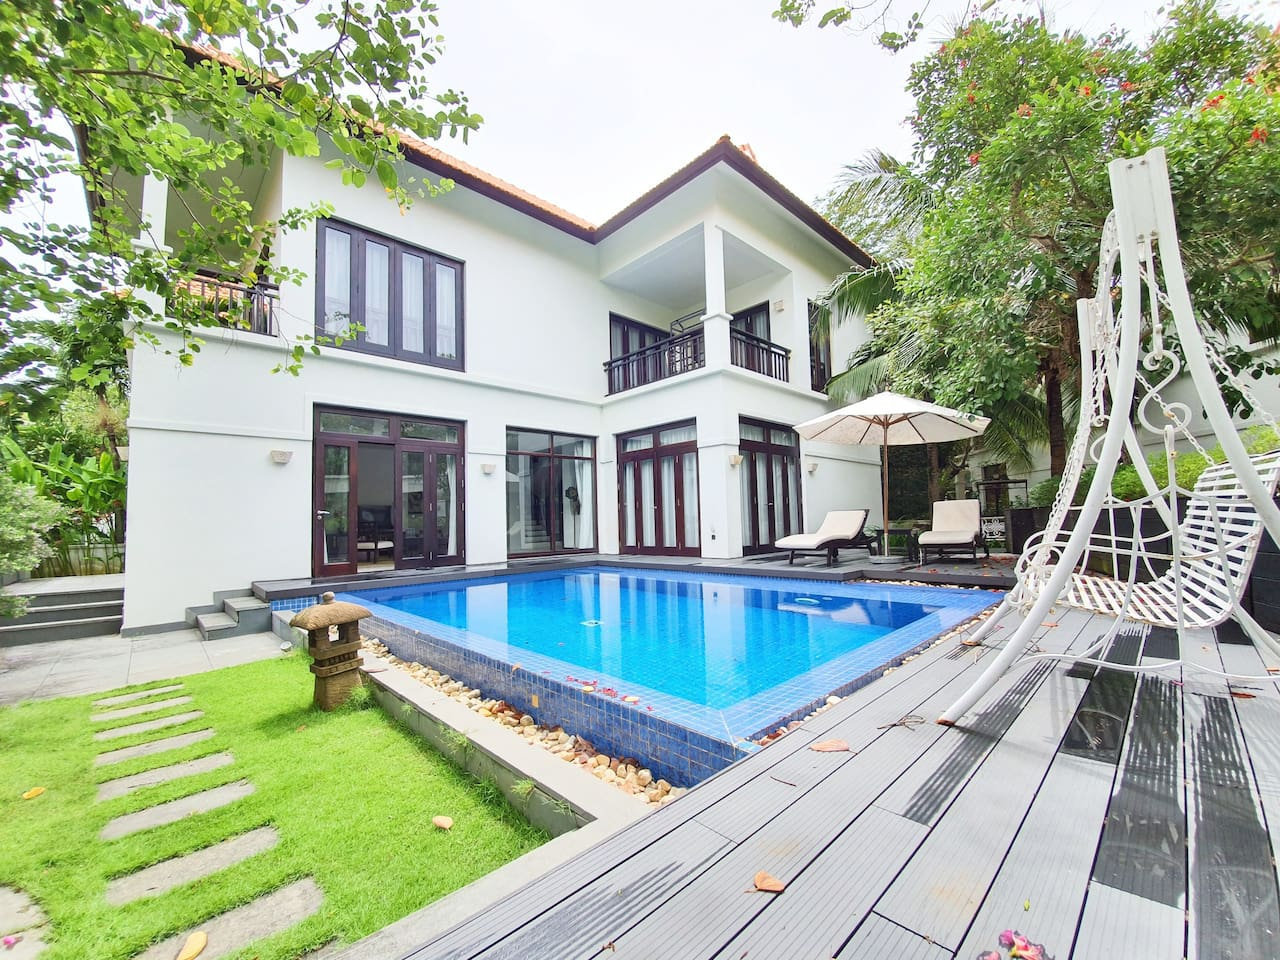 Villa 3 Bed-rooms with pool